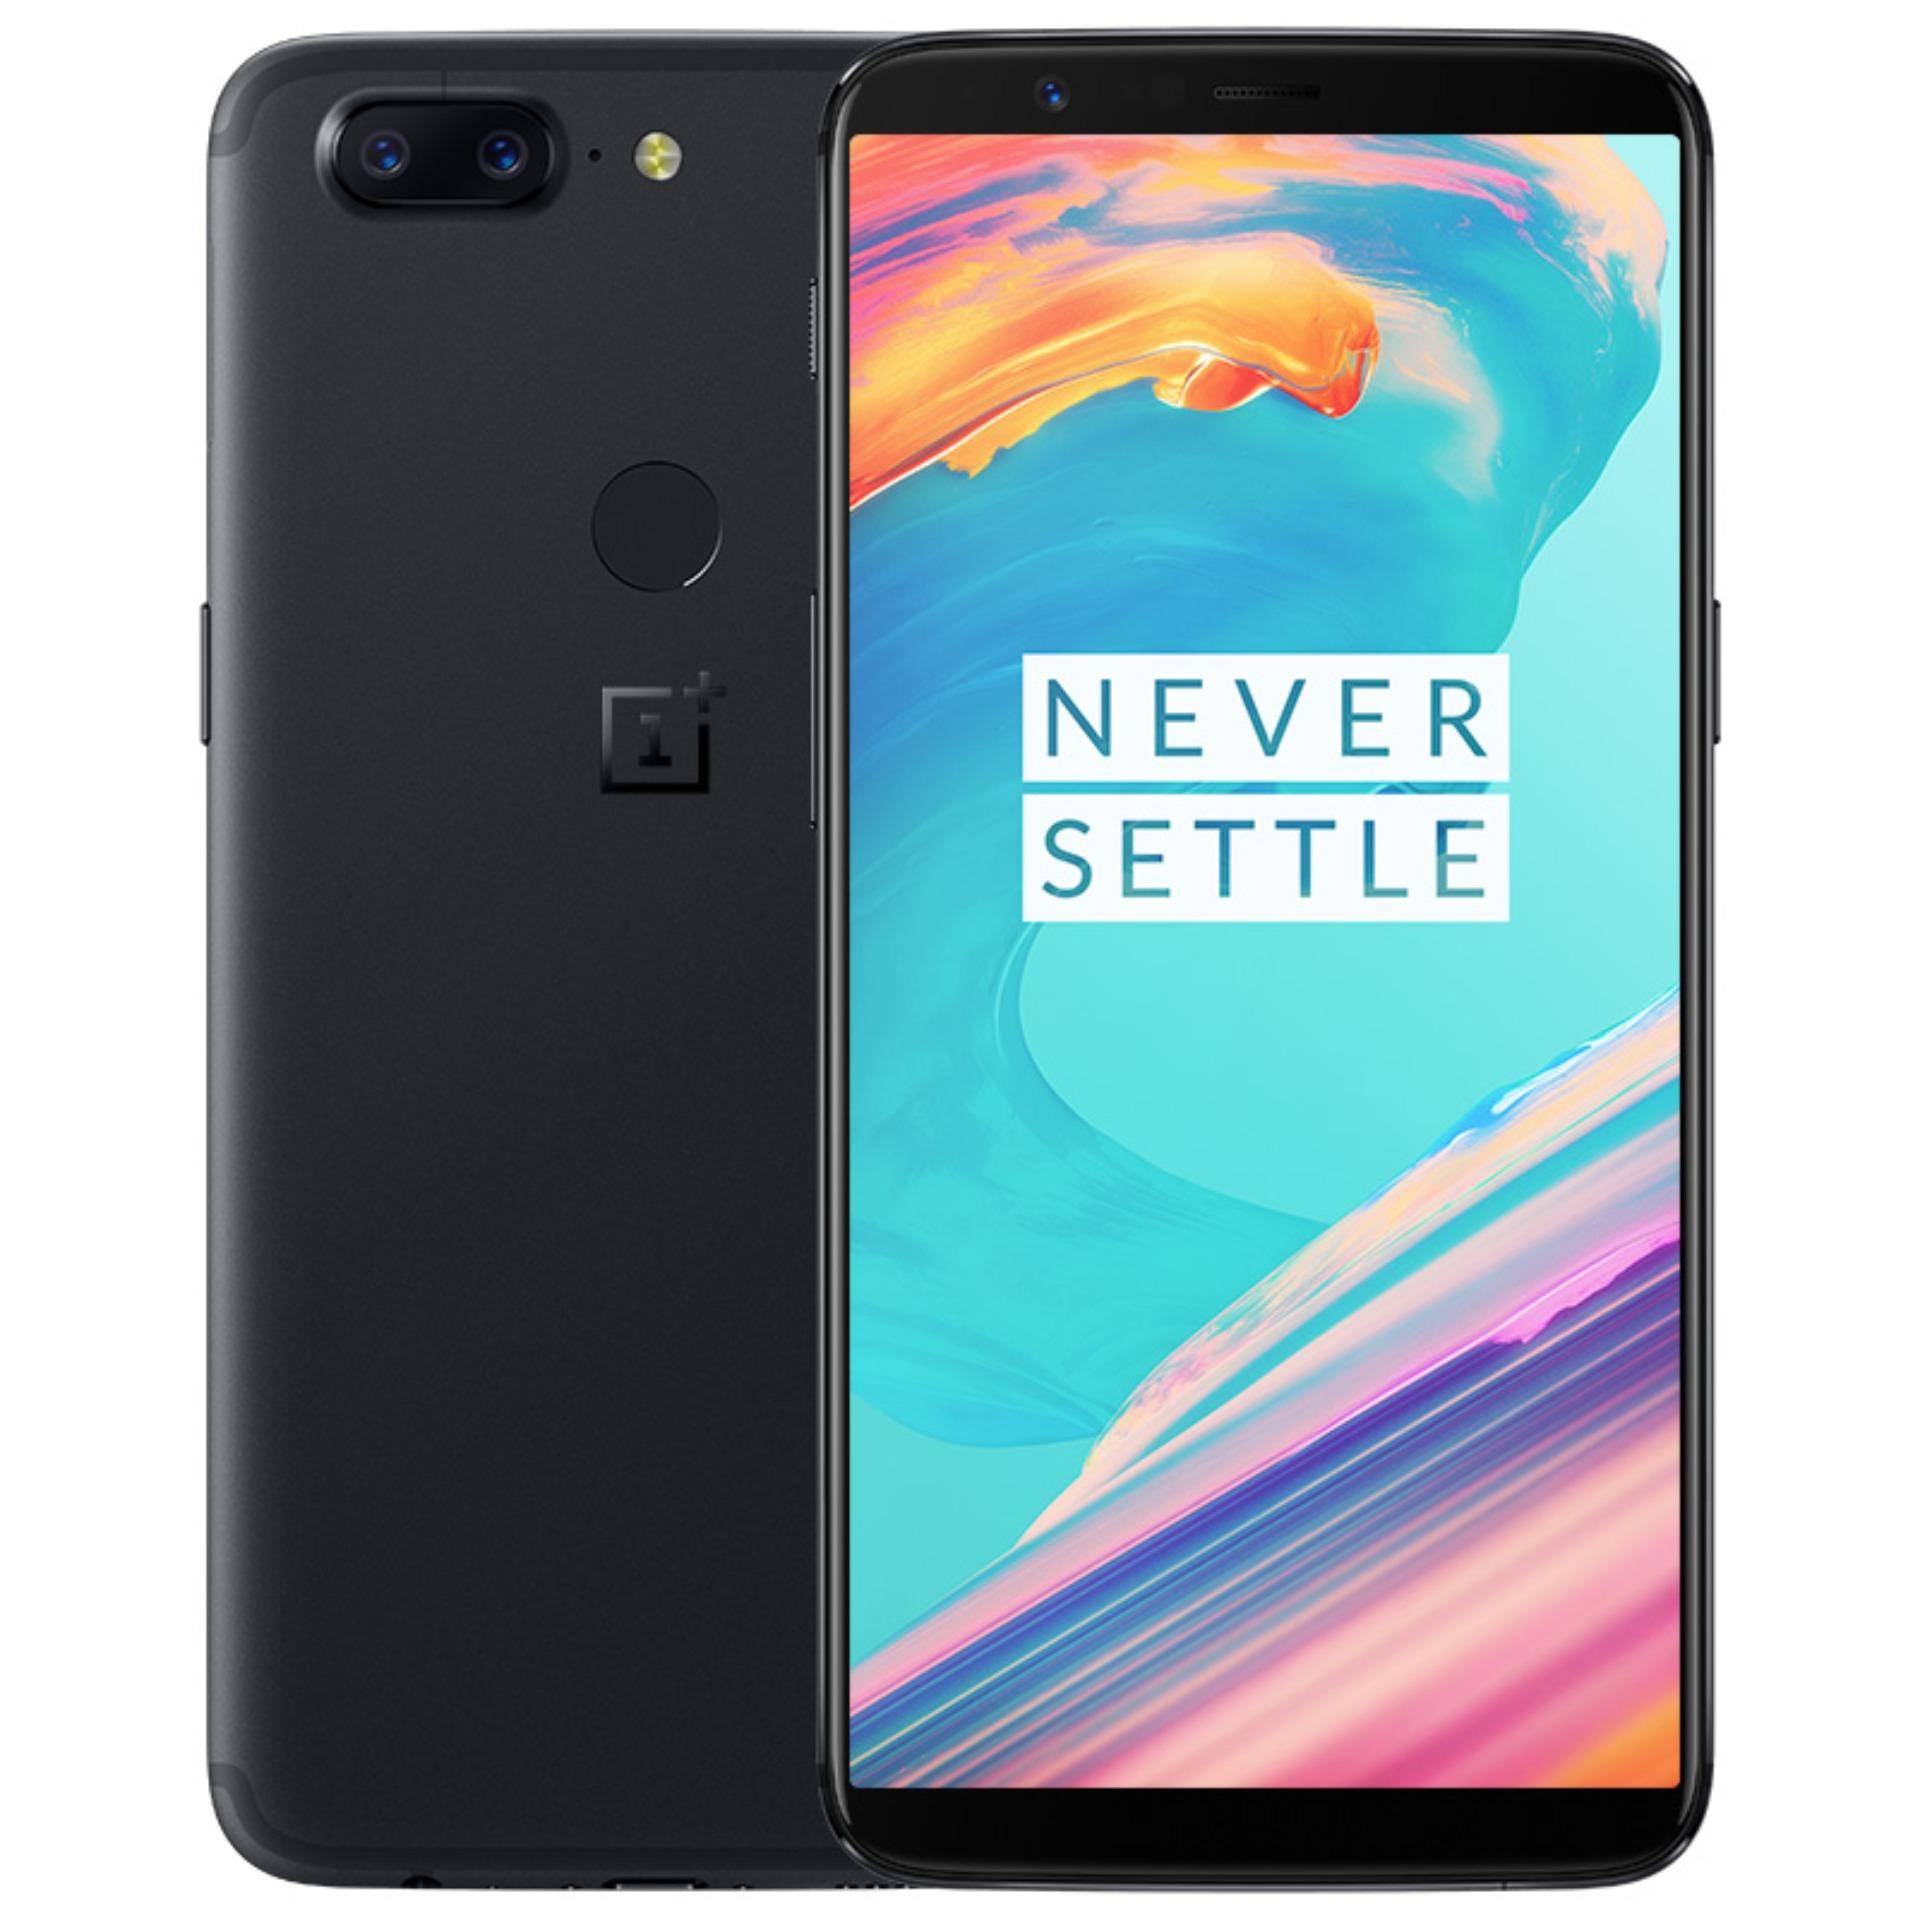 Compare Price Oneplus 5T Midnight Black 8Gb Ram 128Gb Rom Brand New Local Set Oneplus On Singapore